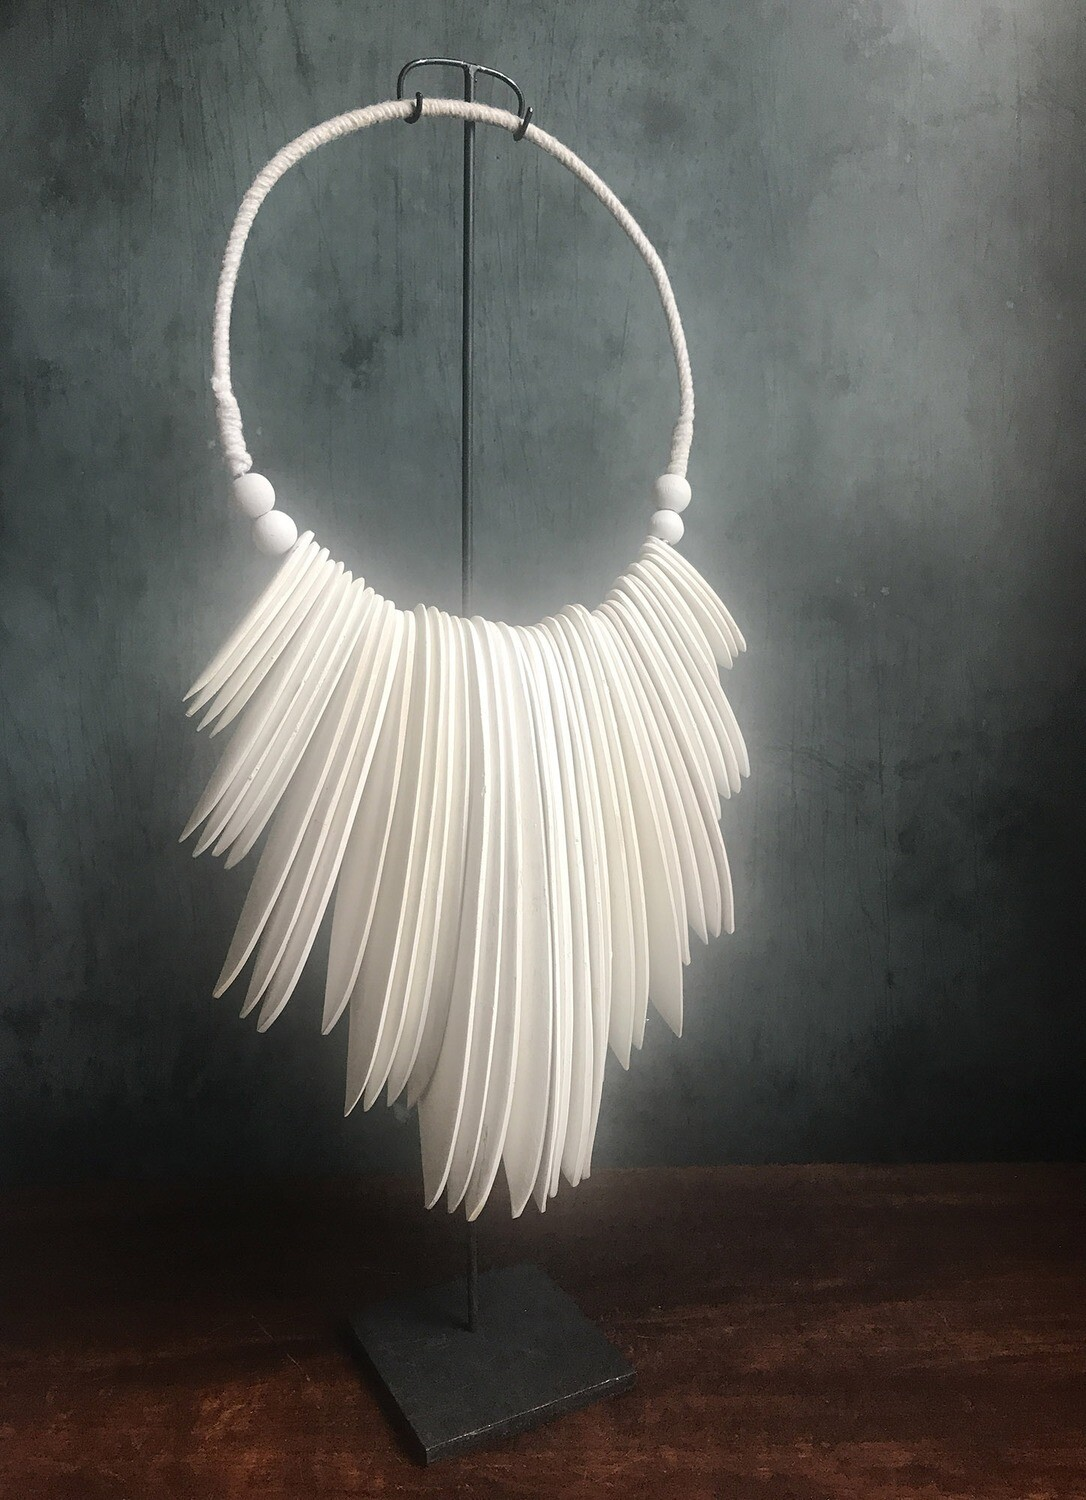 Wood Necklace Wall Decor - White